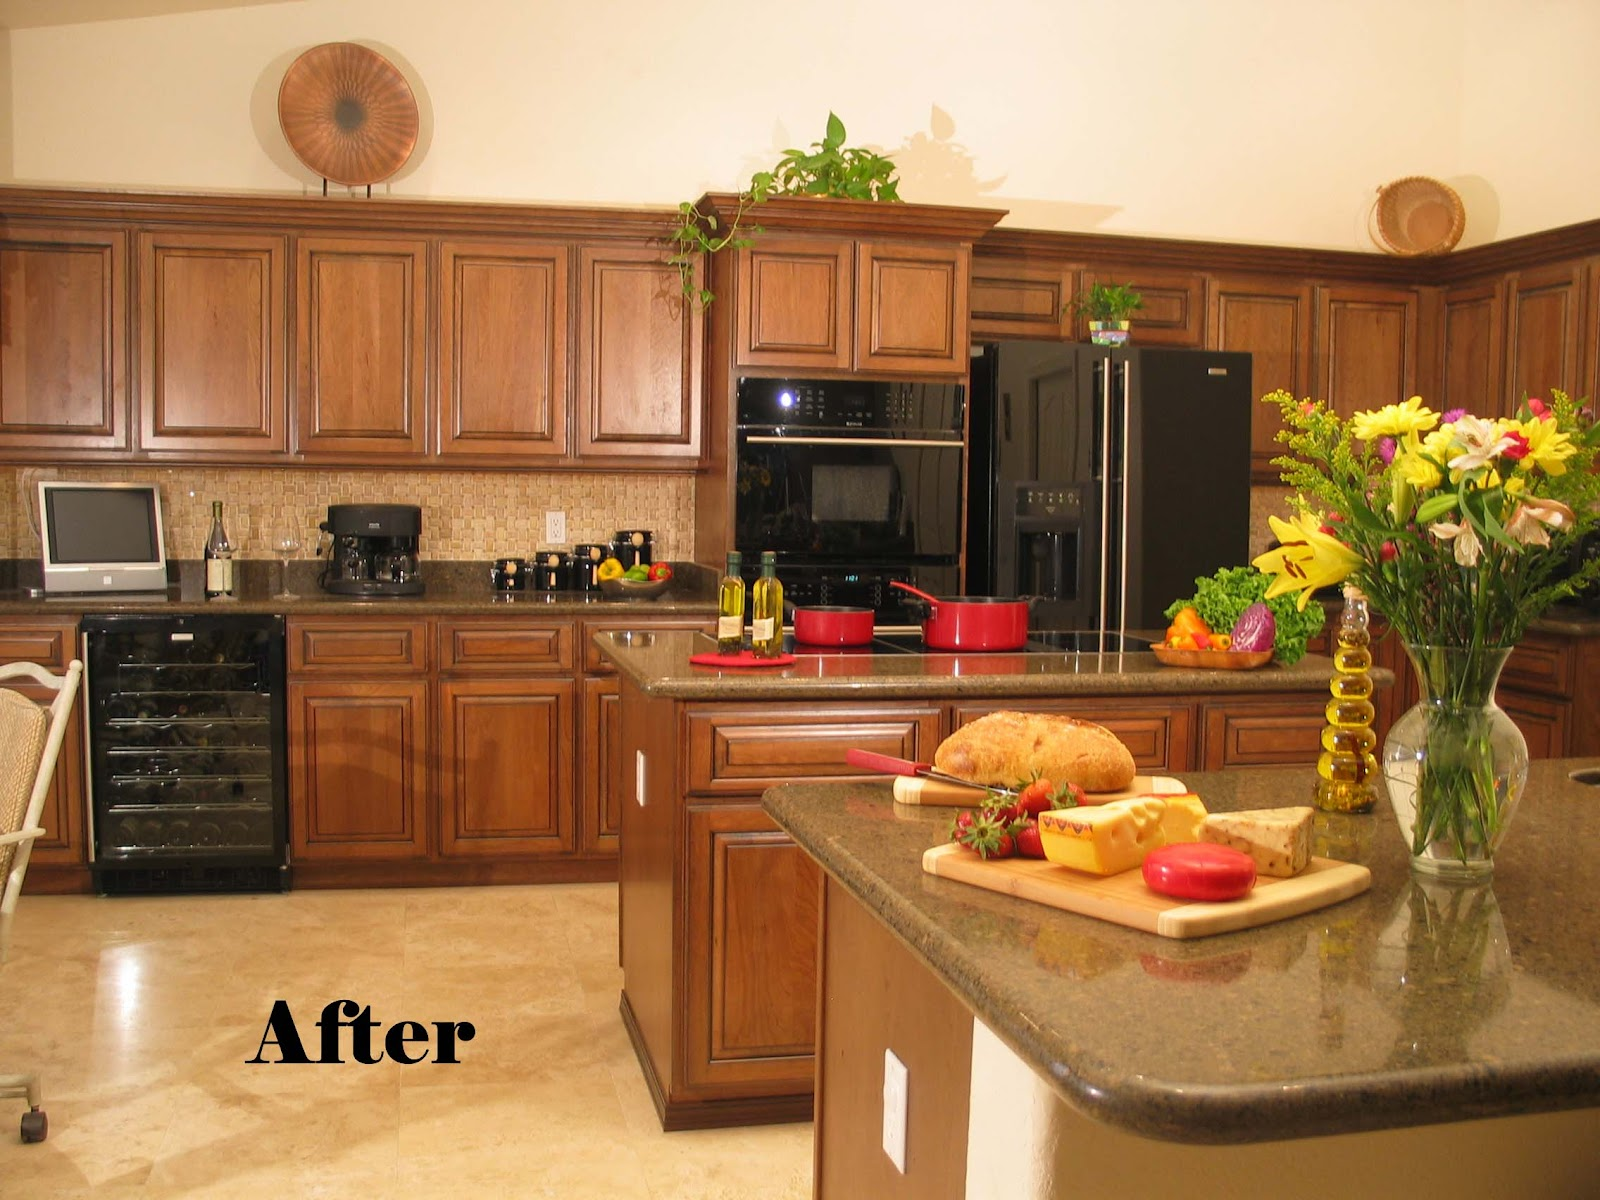 Rawdoors.net Blog: What is Kitchen Cabinet Refacing or ...